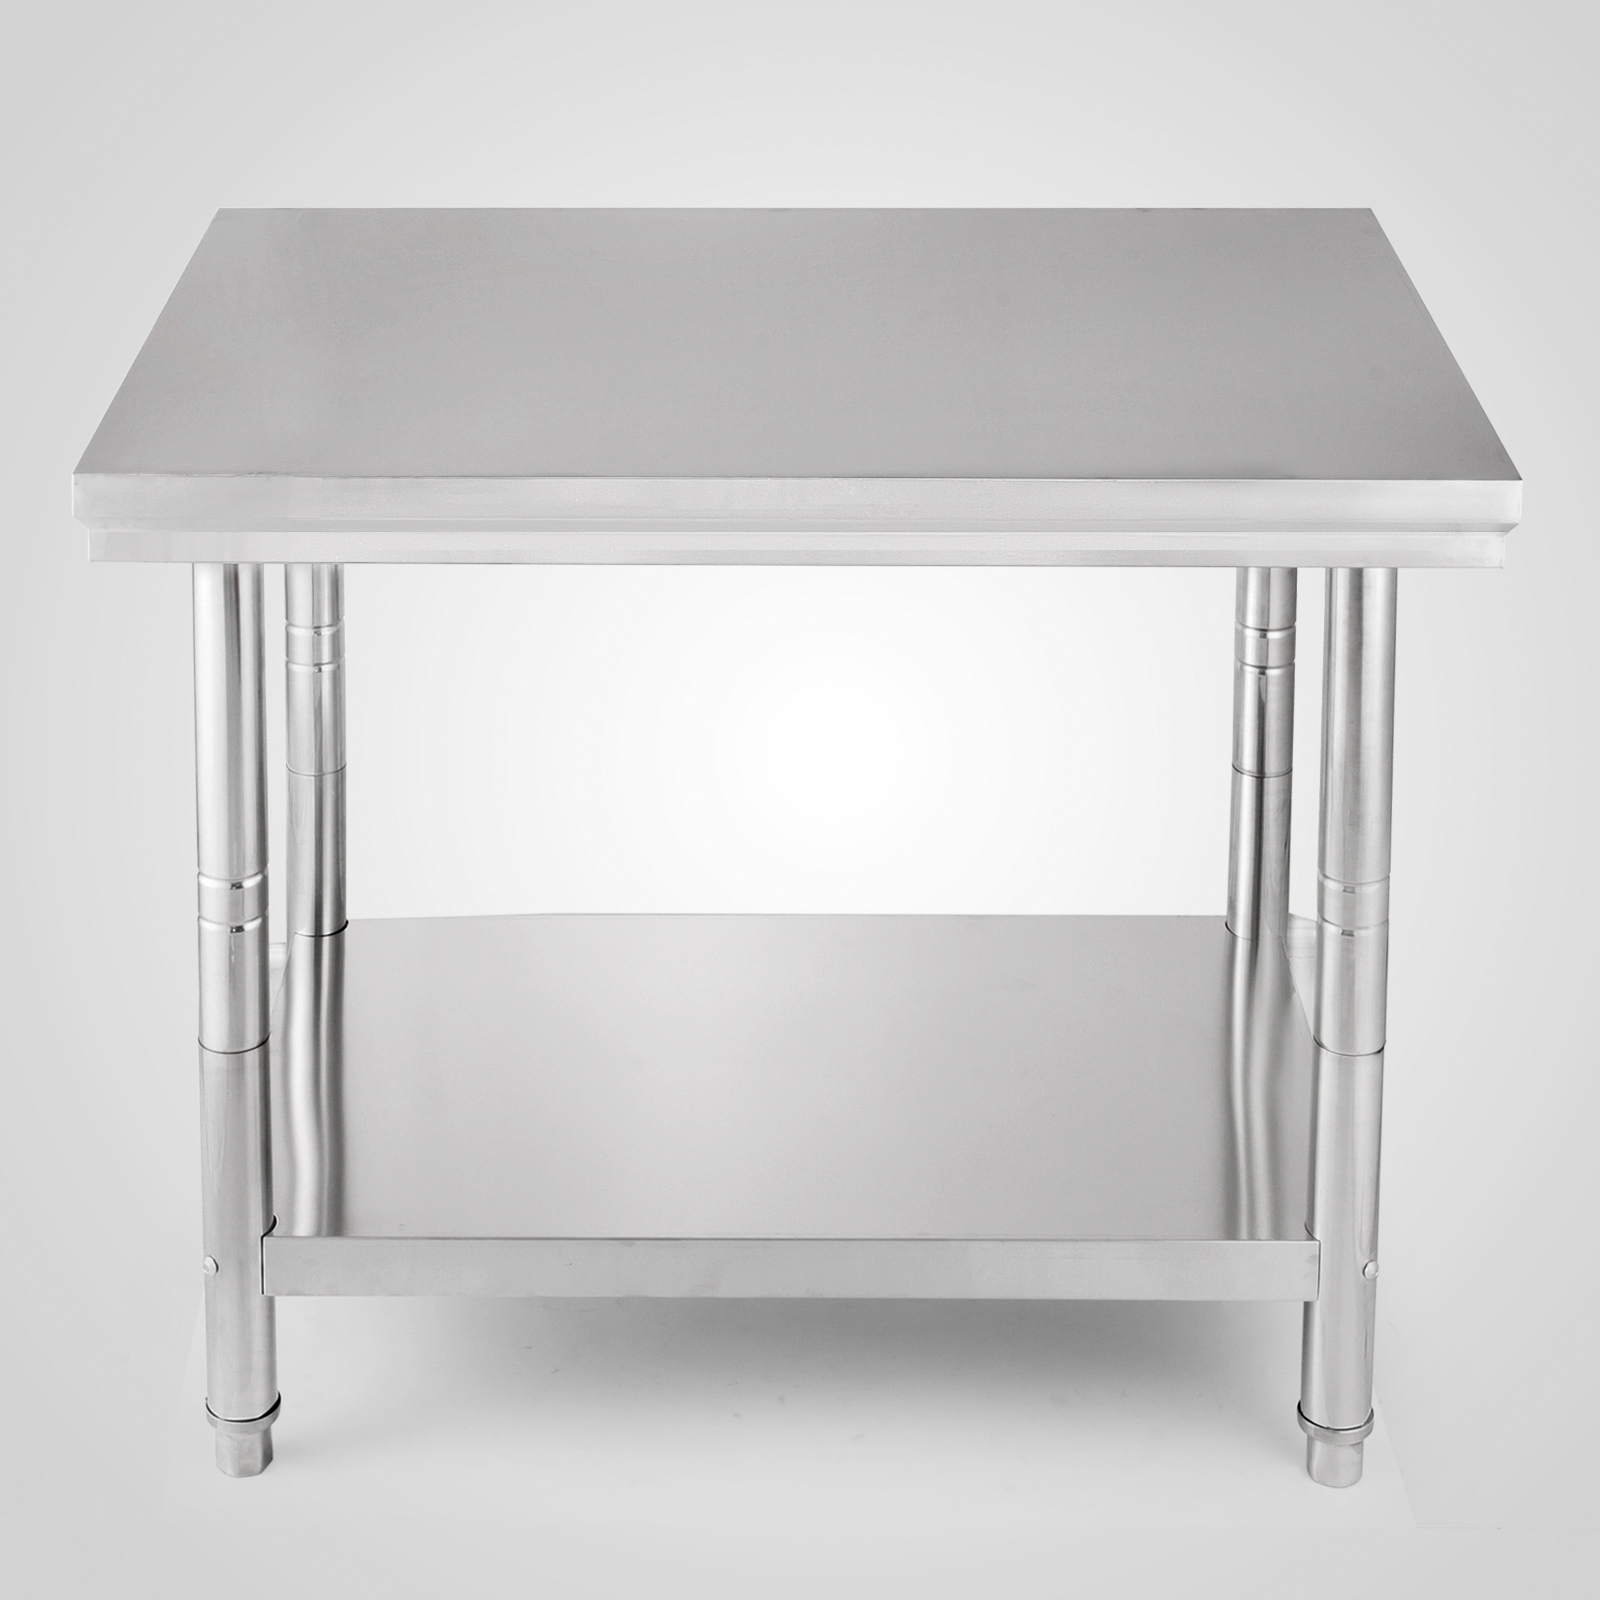 80cm hauteur table de travail inox table de cuisine pliante agent 60 90cm ebay. Black Bedroom Furniture Sets. Home Design Ideas